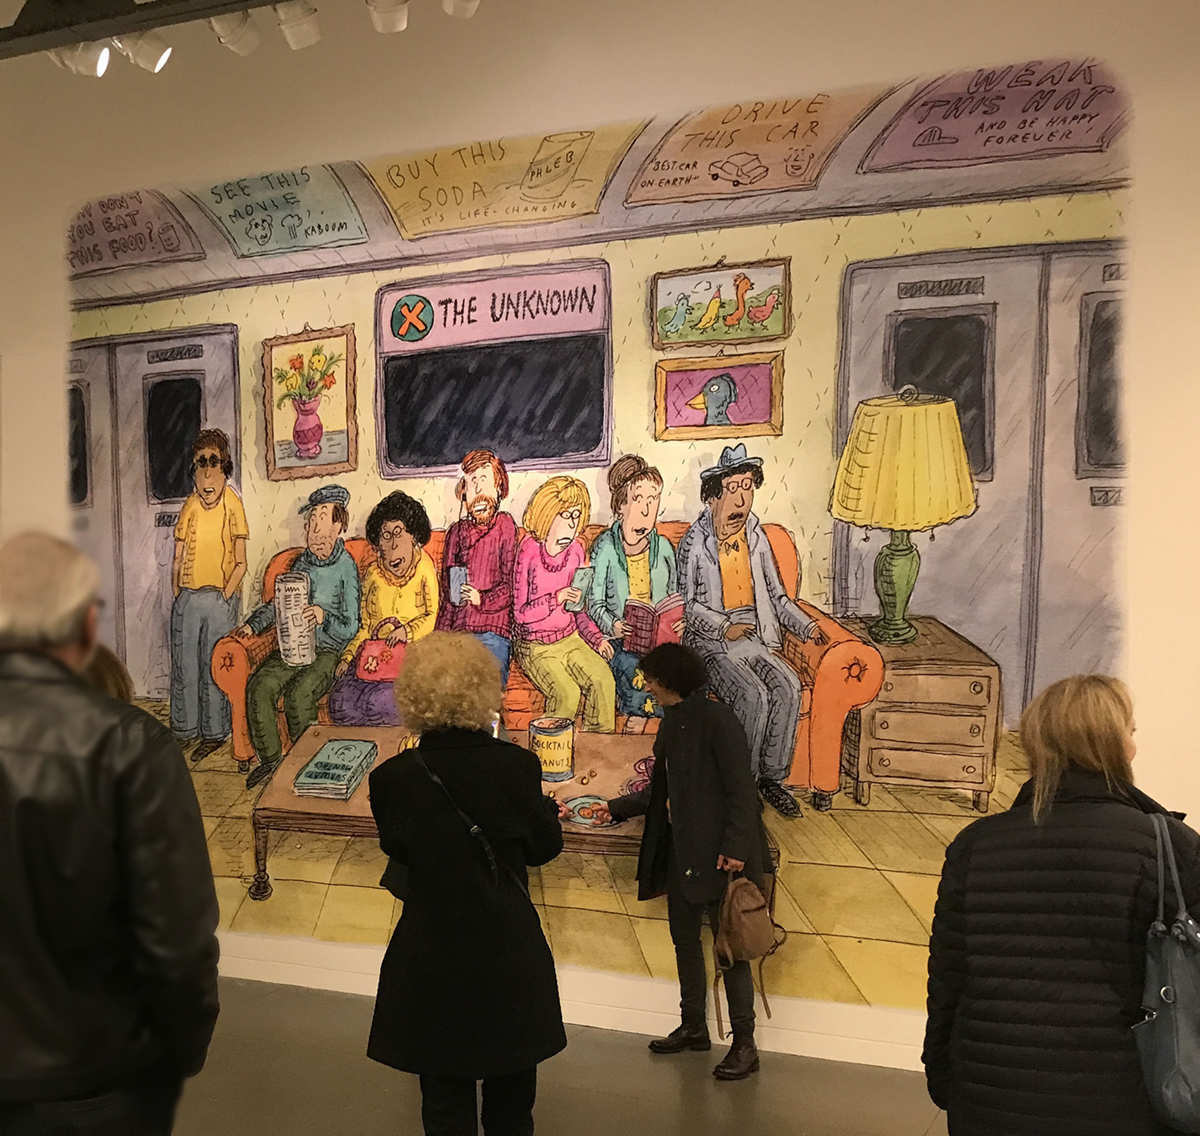 Roz Chast Subway Exhibition Mural at The CJM